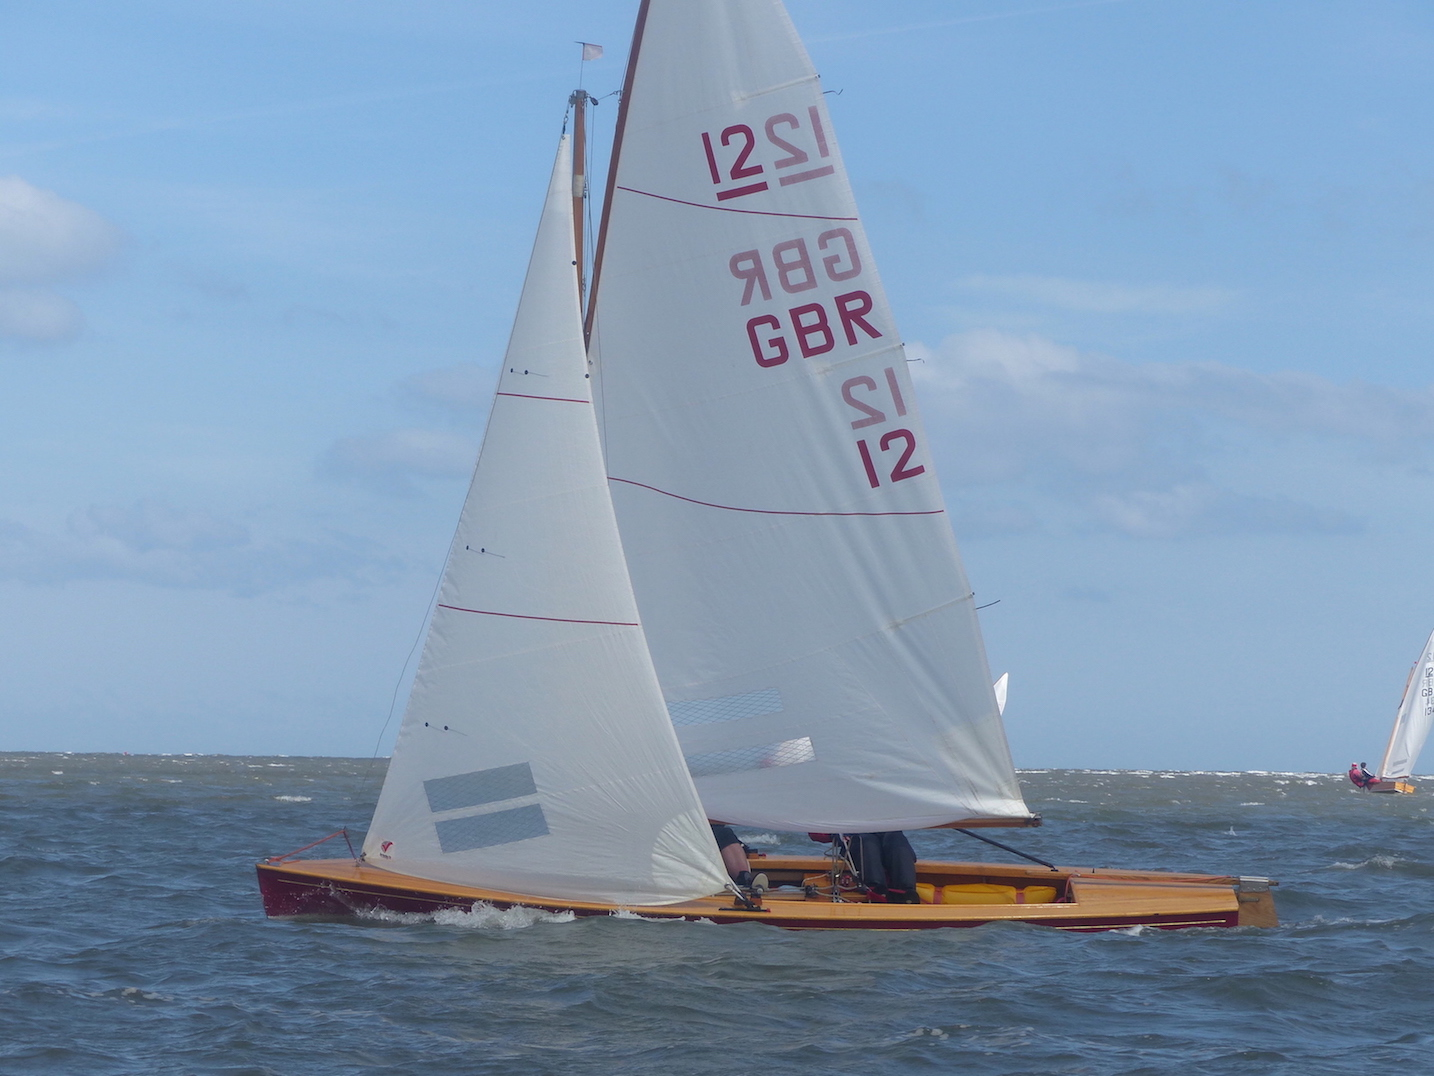 WSC GBR12 again